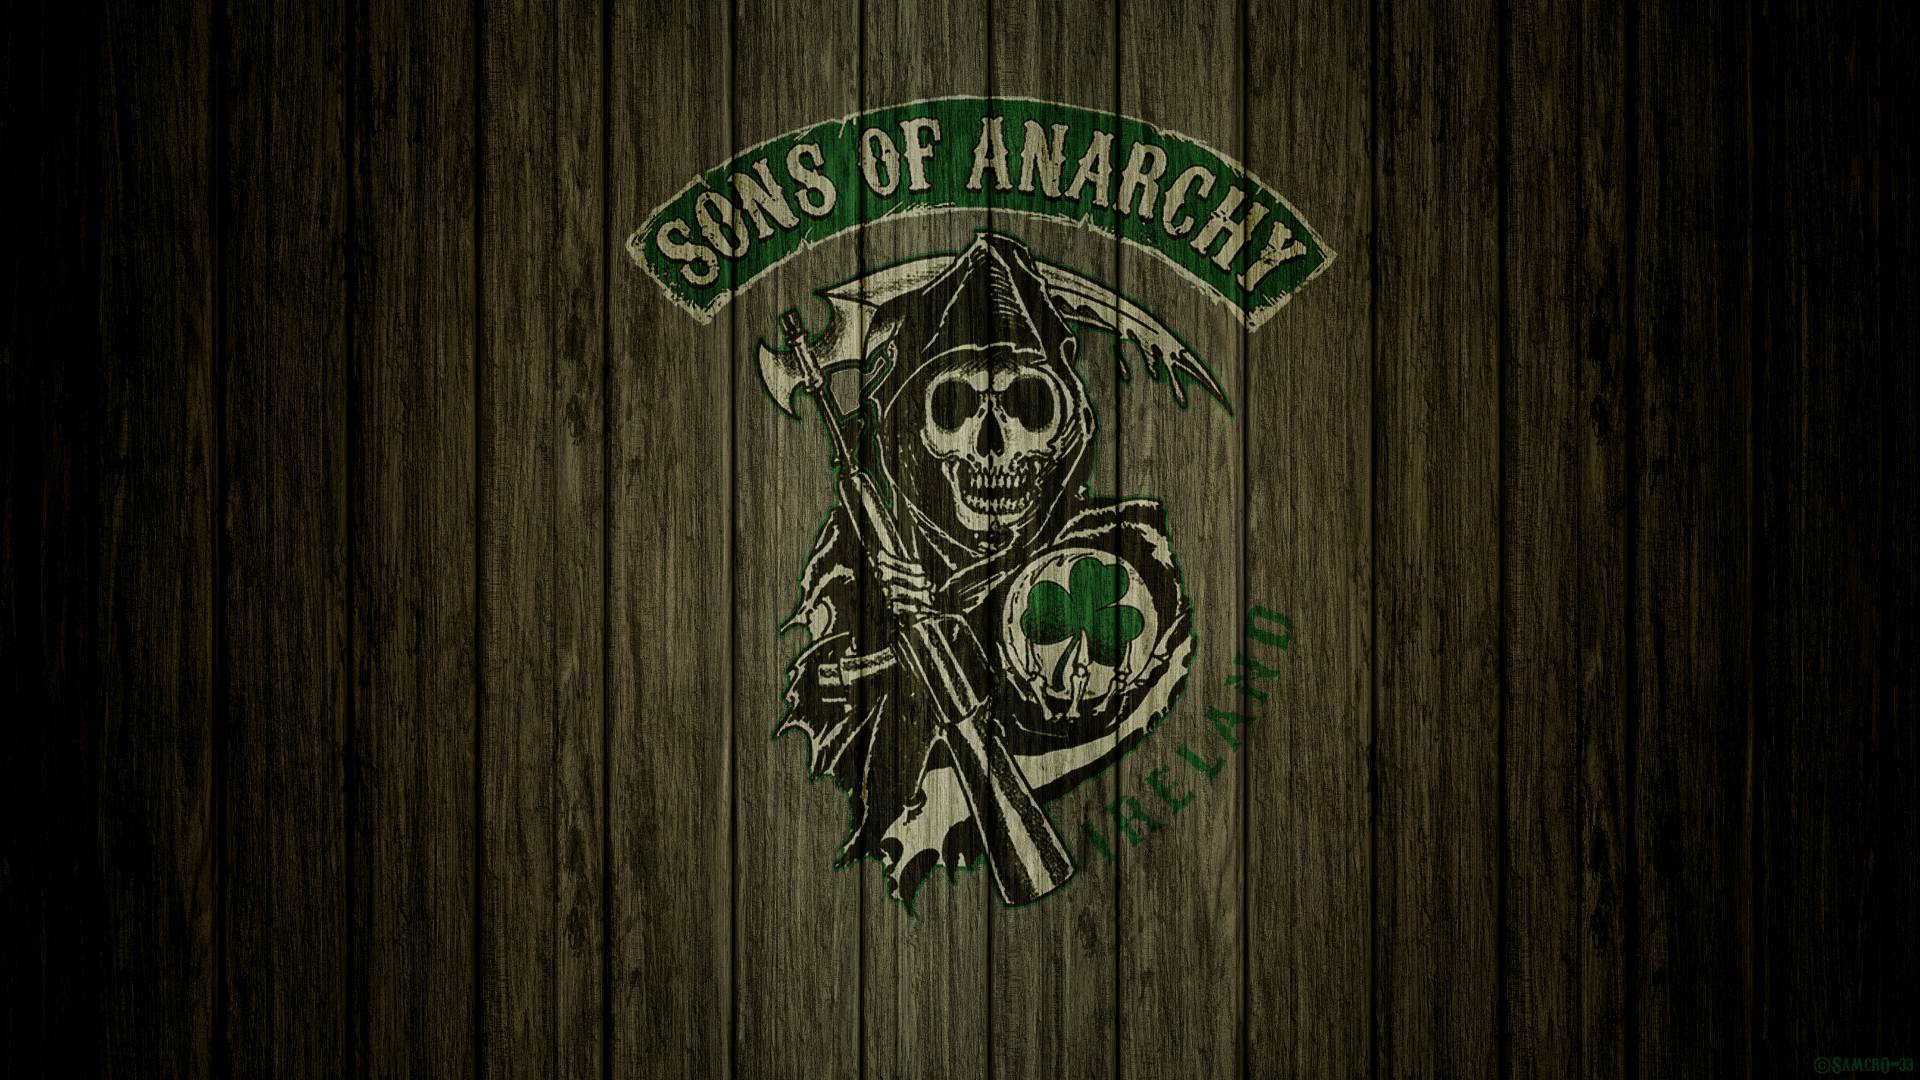 Free Download 65 Sons Of Anarchy Wallpapers Sons Of Anarchy